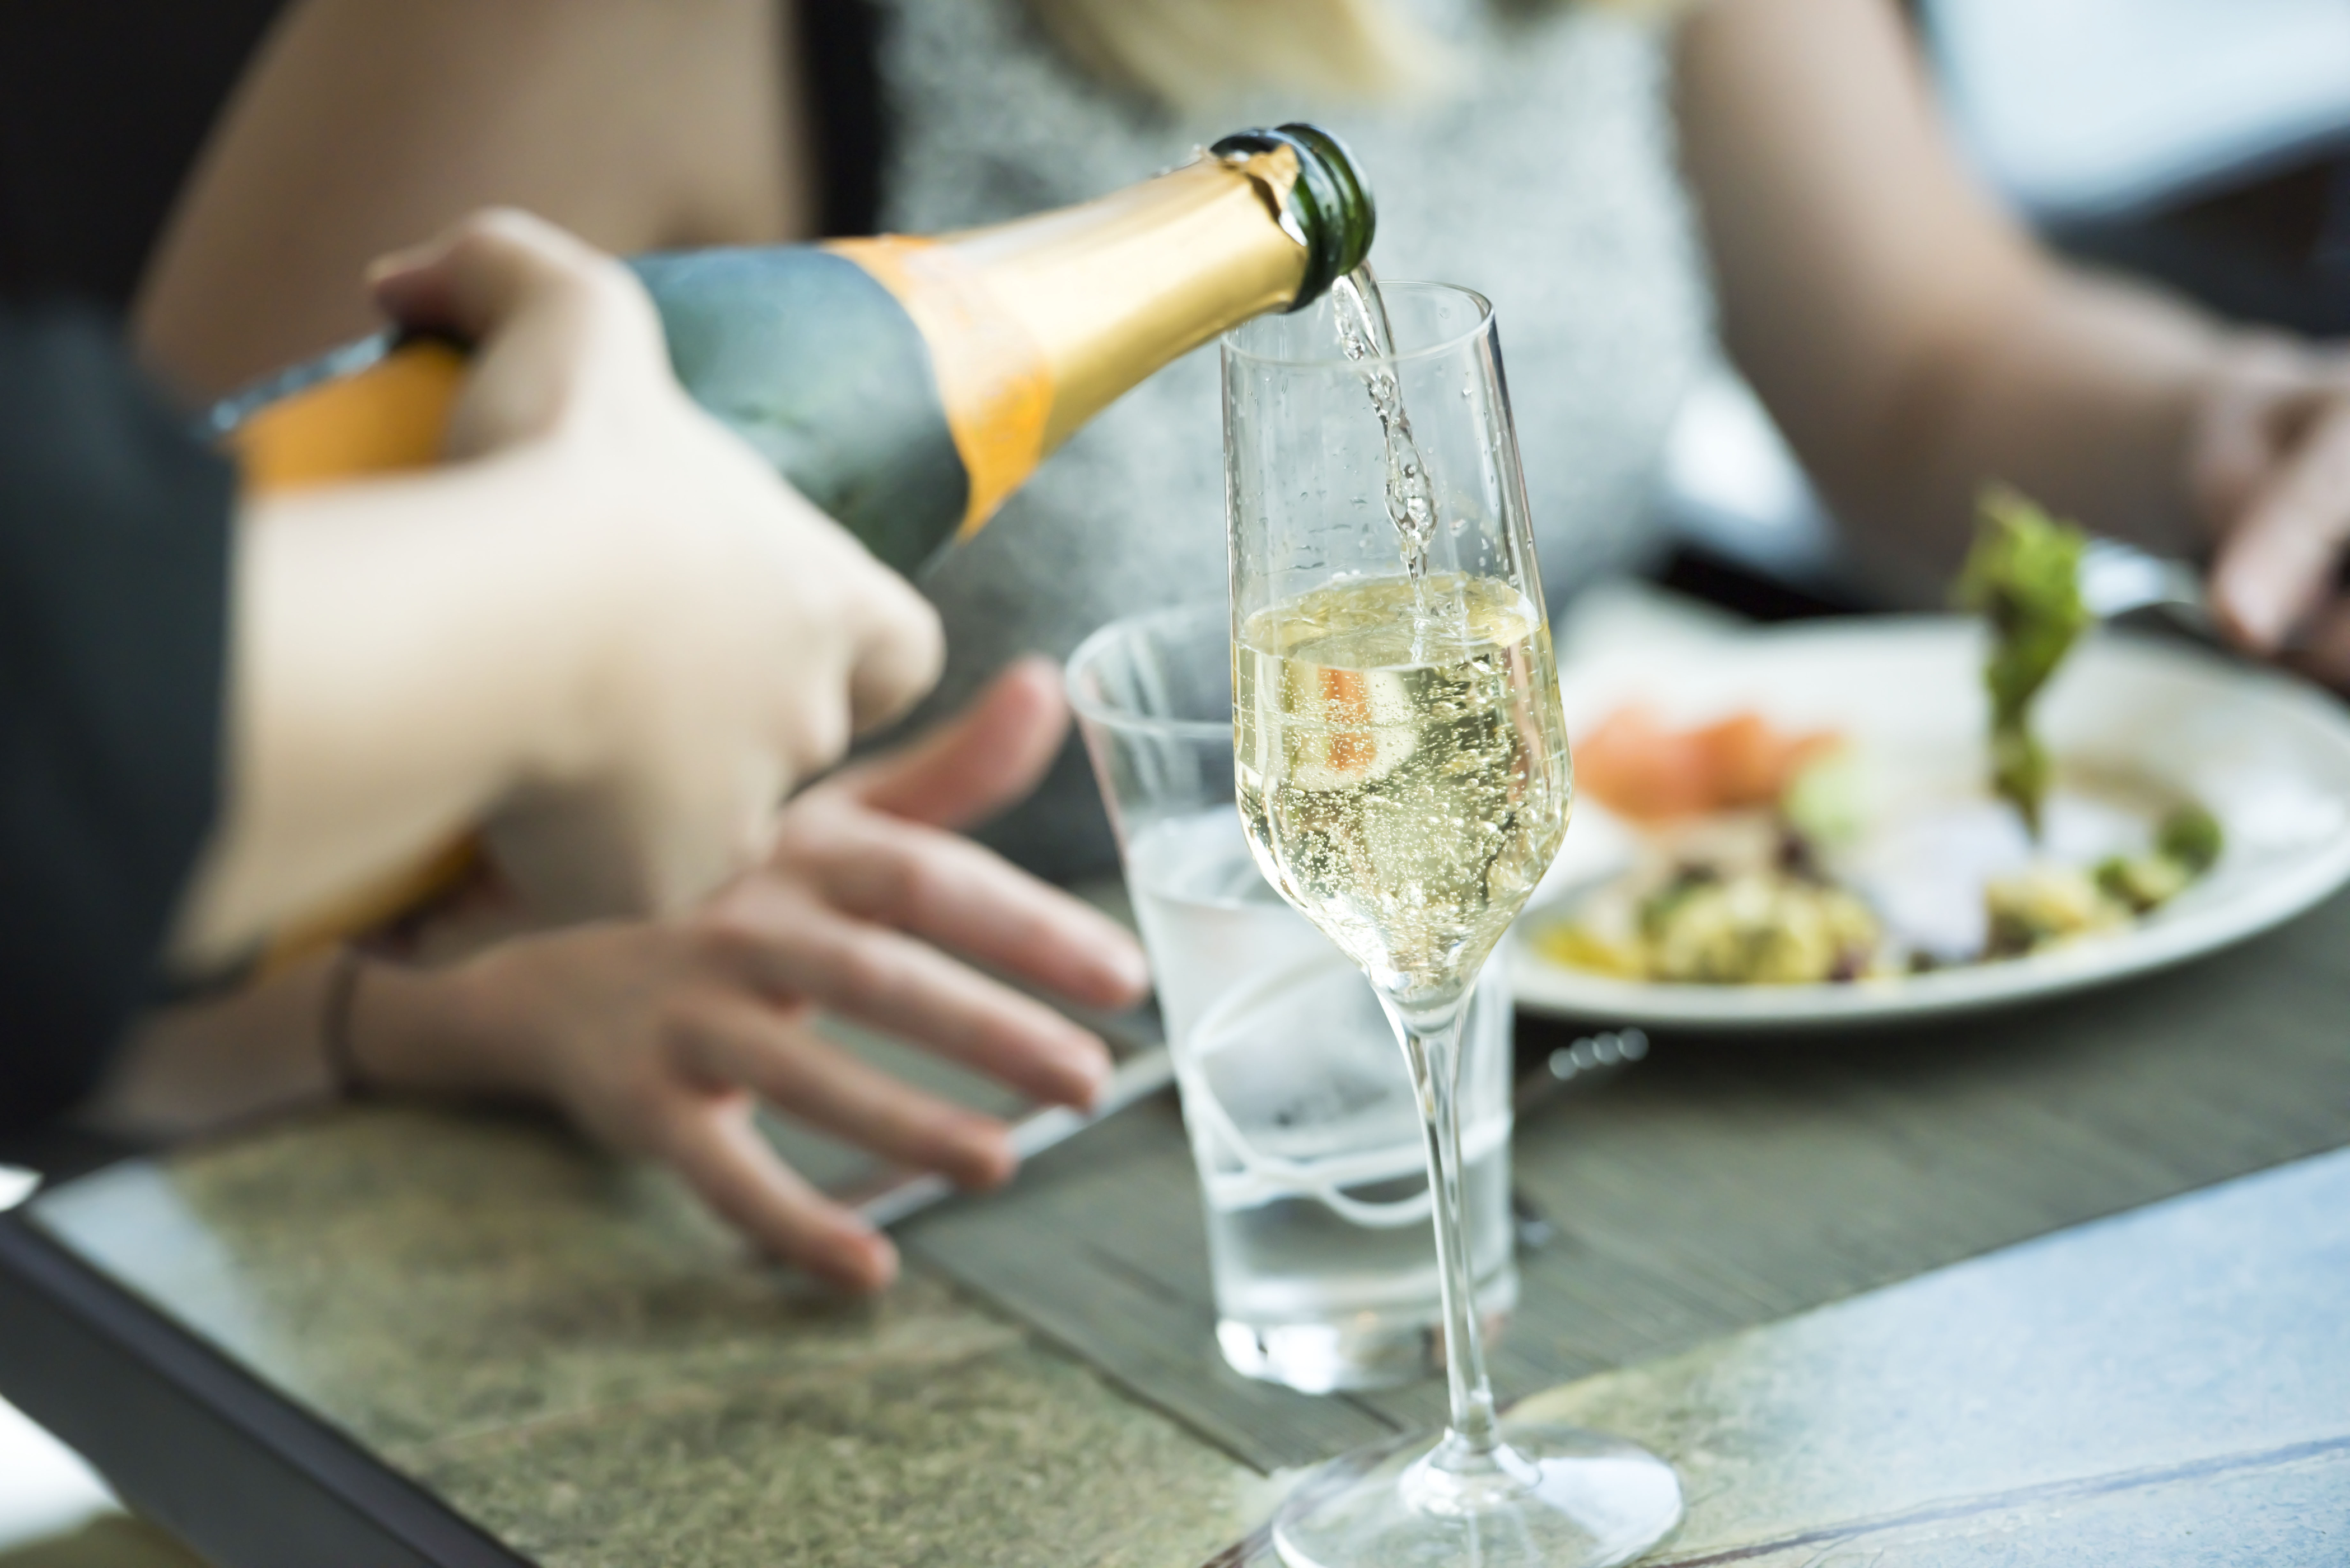 Pouring champagne into the glass, selective focus